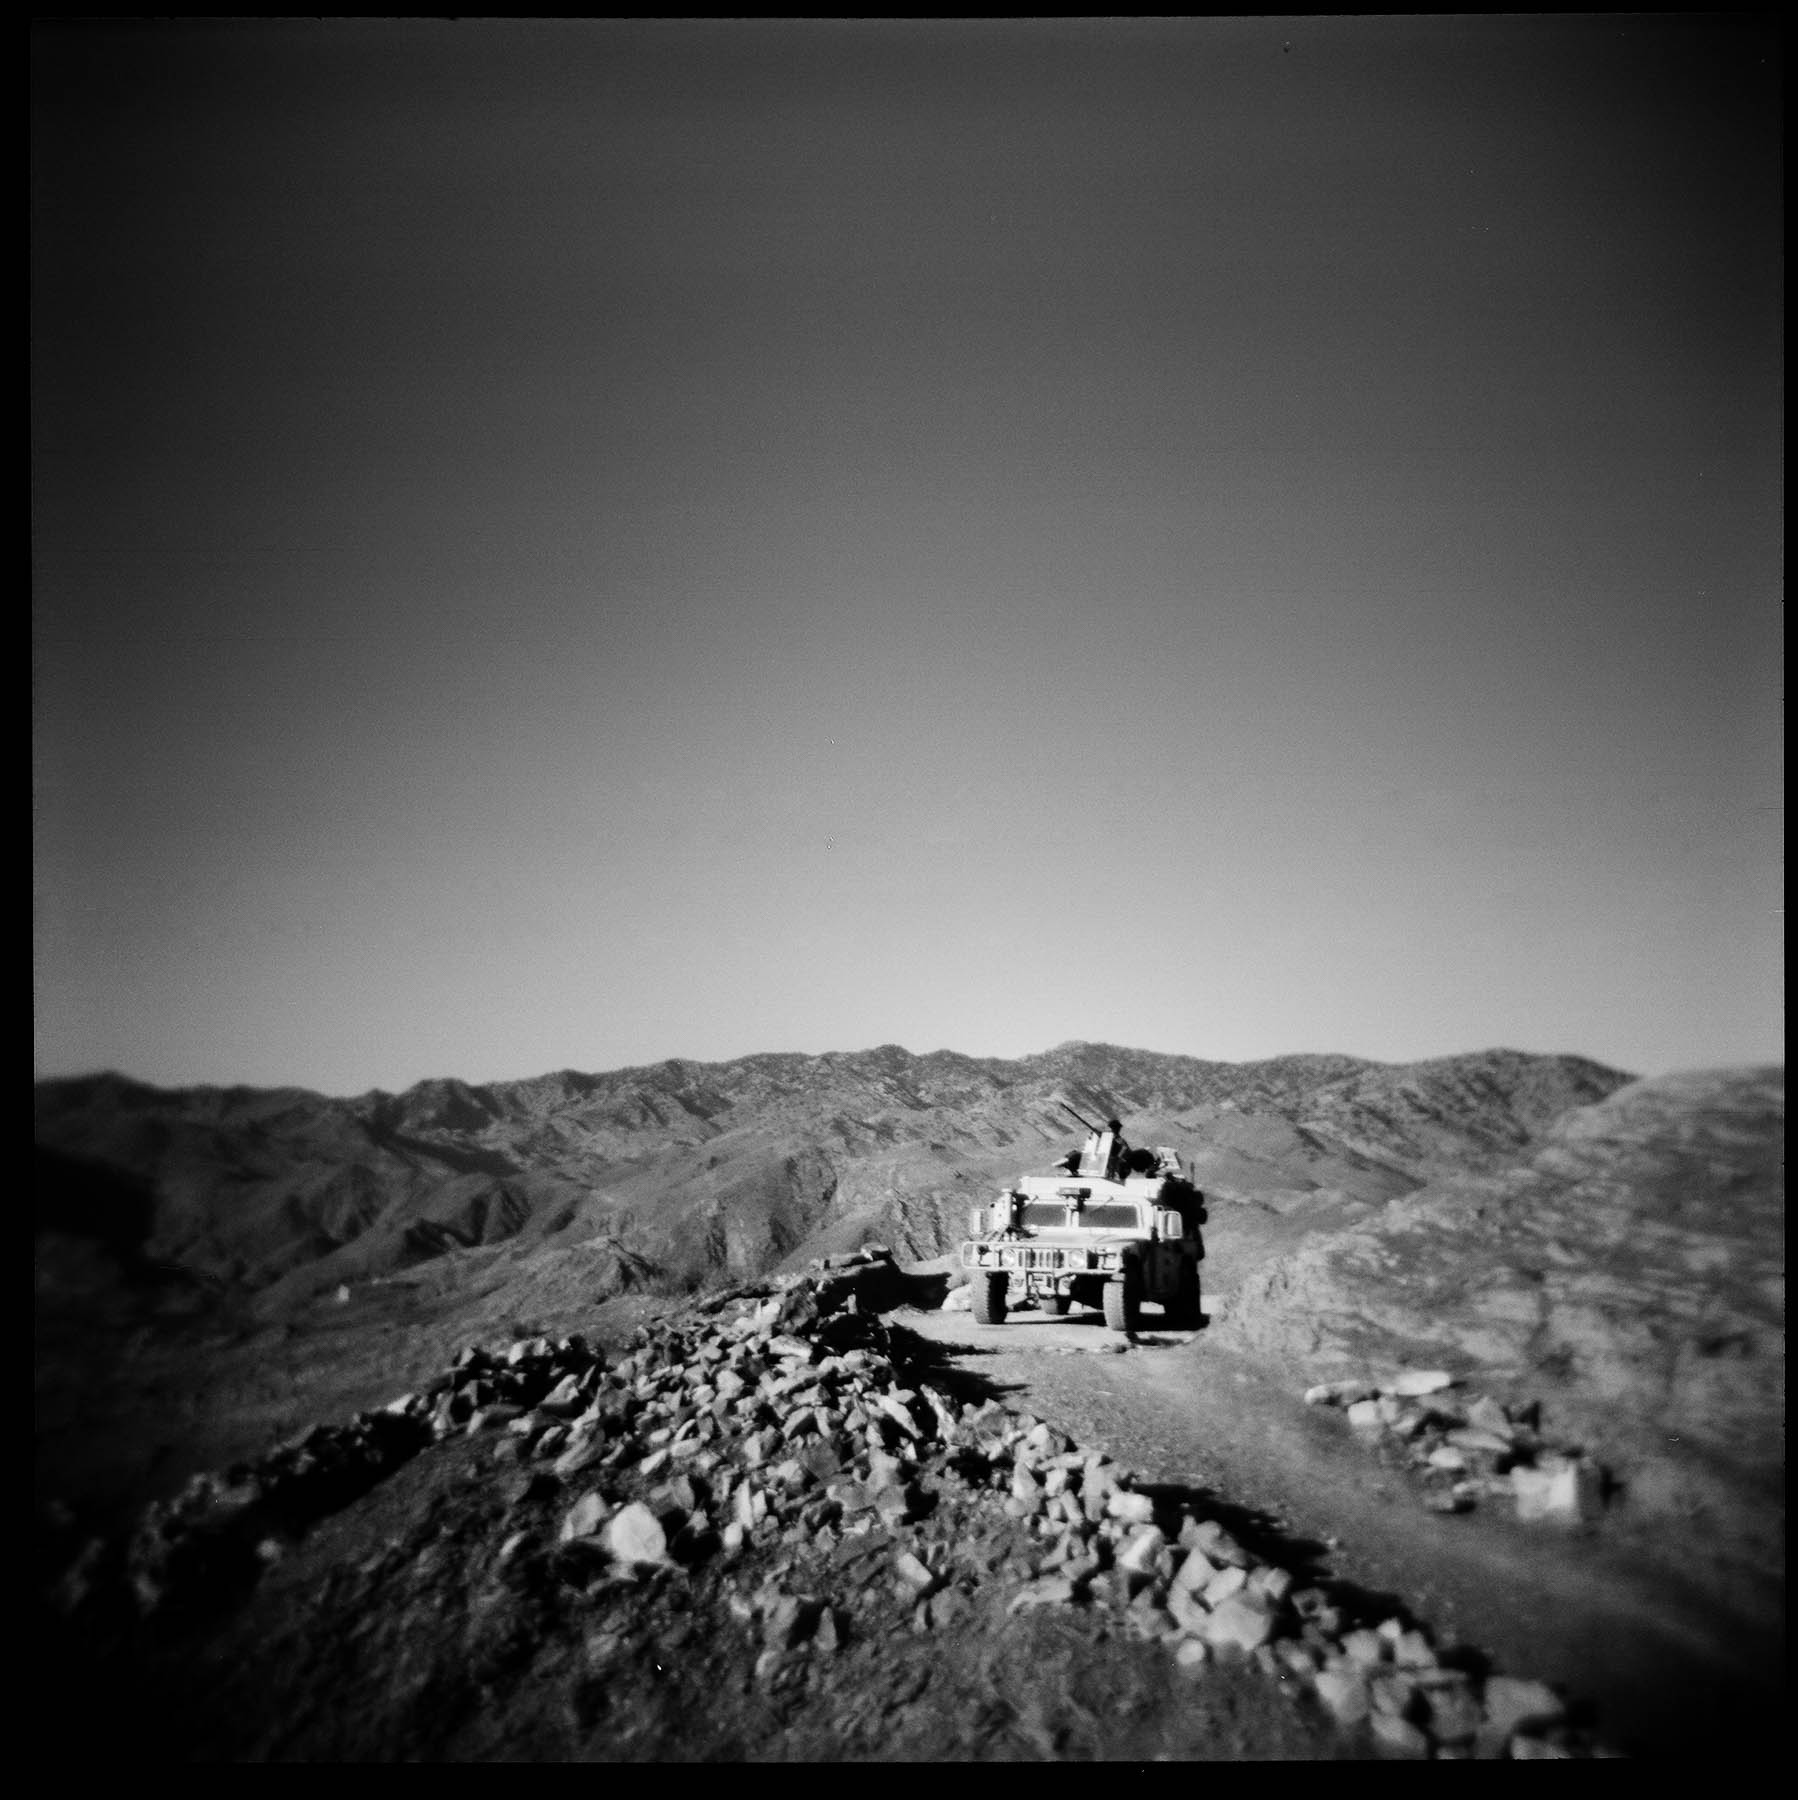 An Afghan Local Police vehicle sets up an overwatch position over the Pirkowti valley in Paktika province, Afghanistan. 2011.